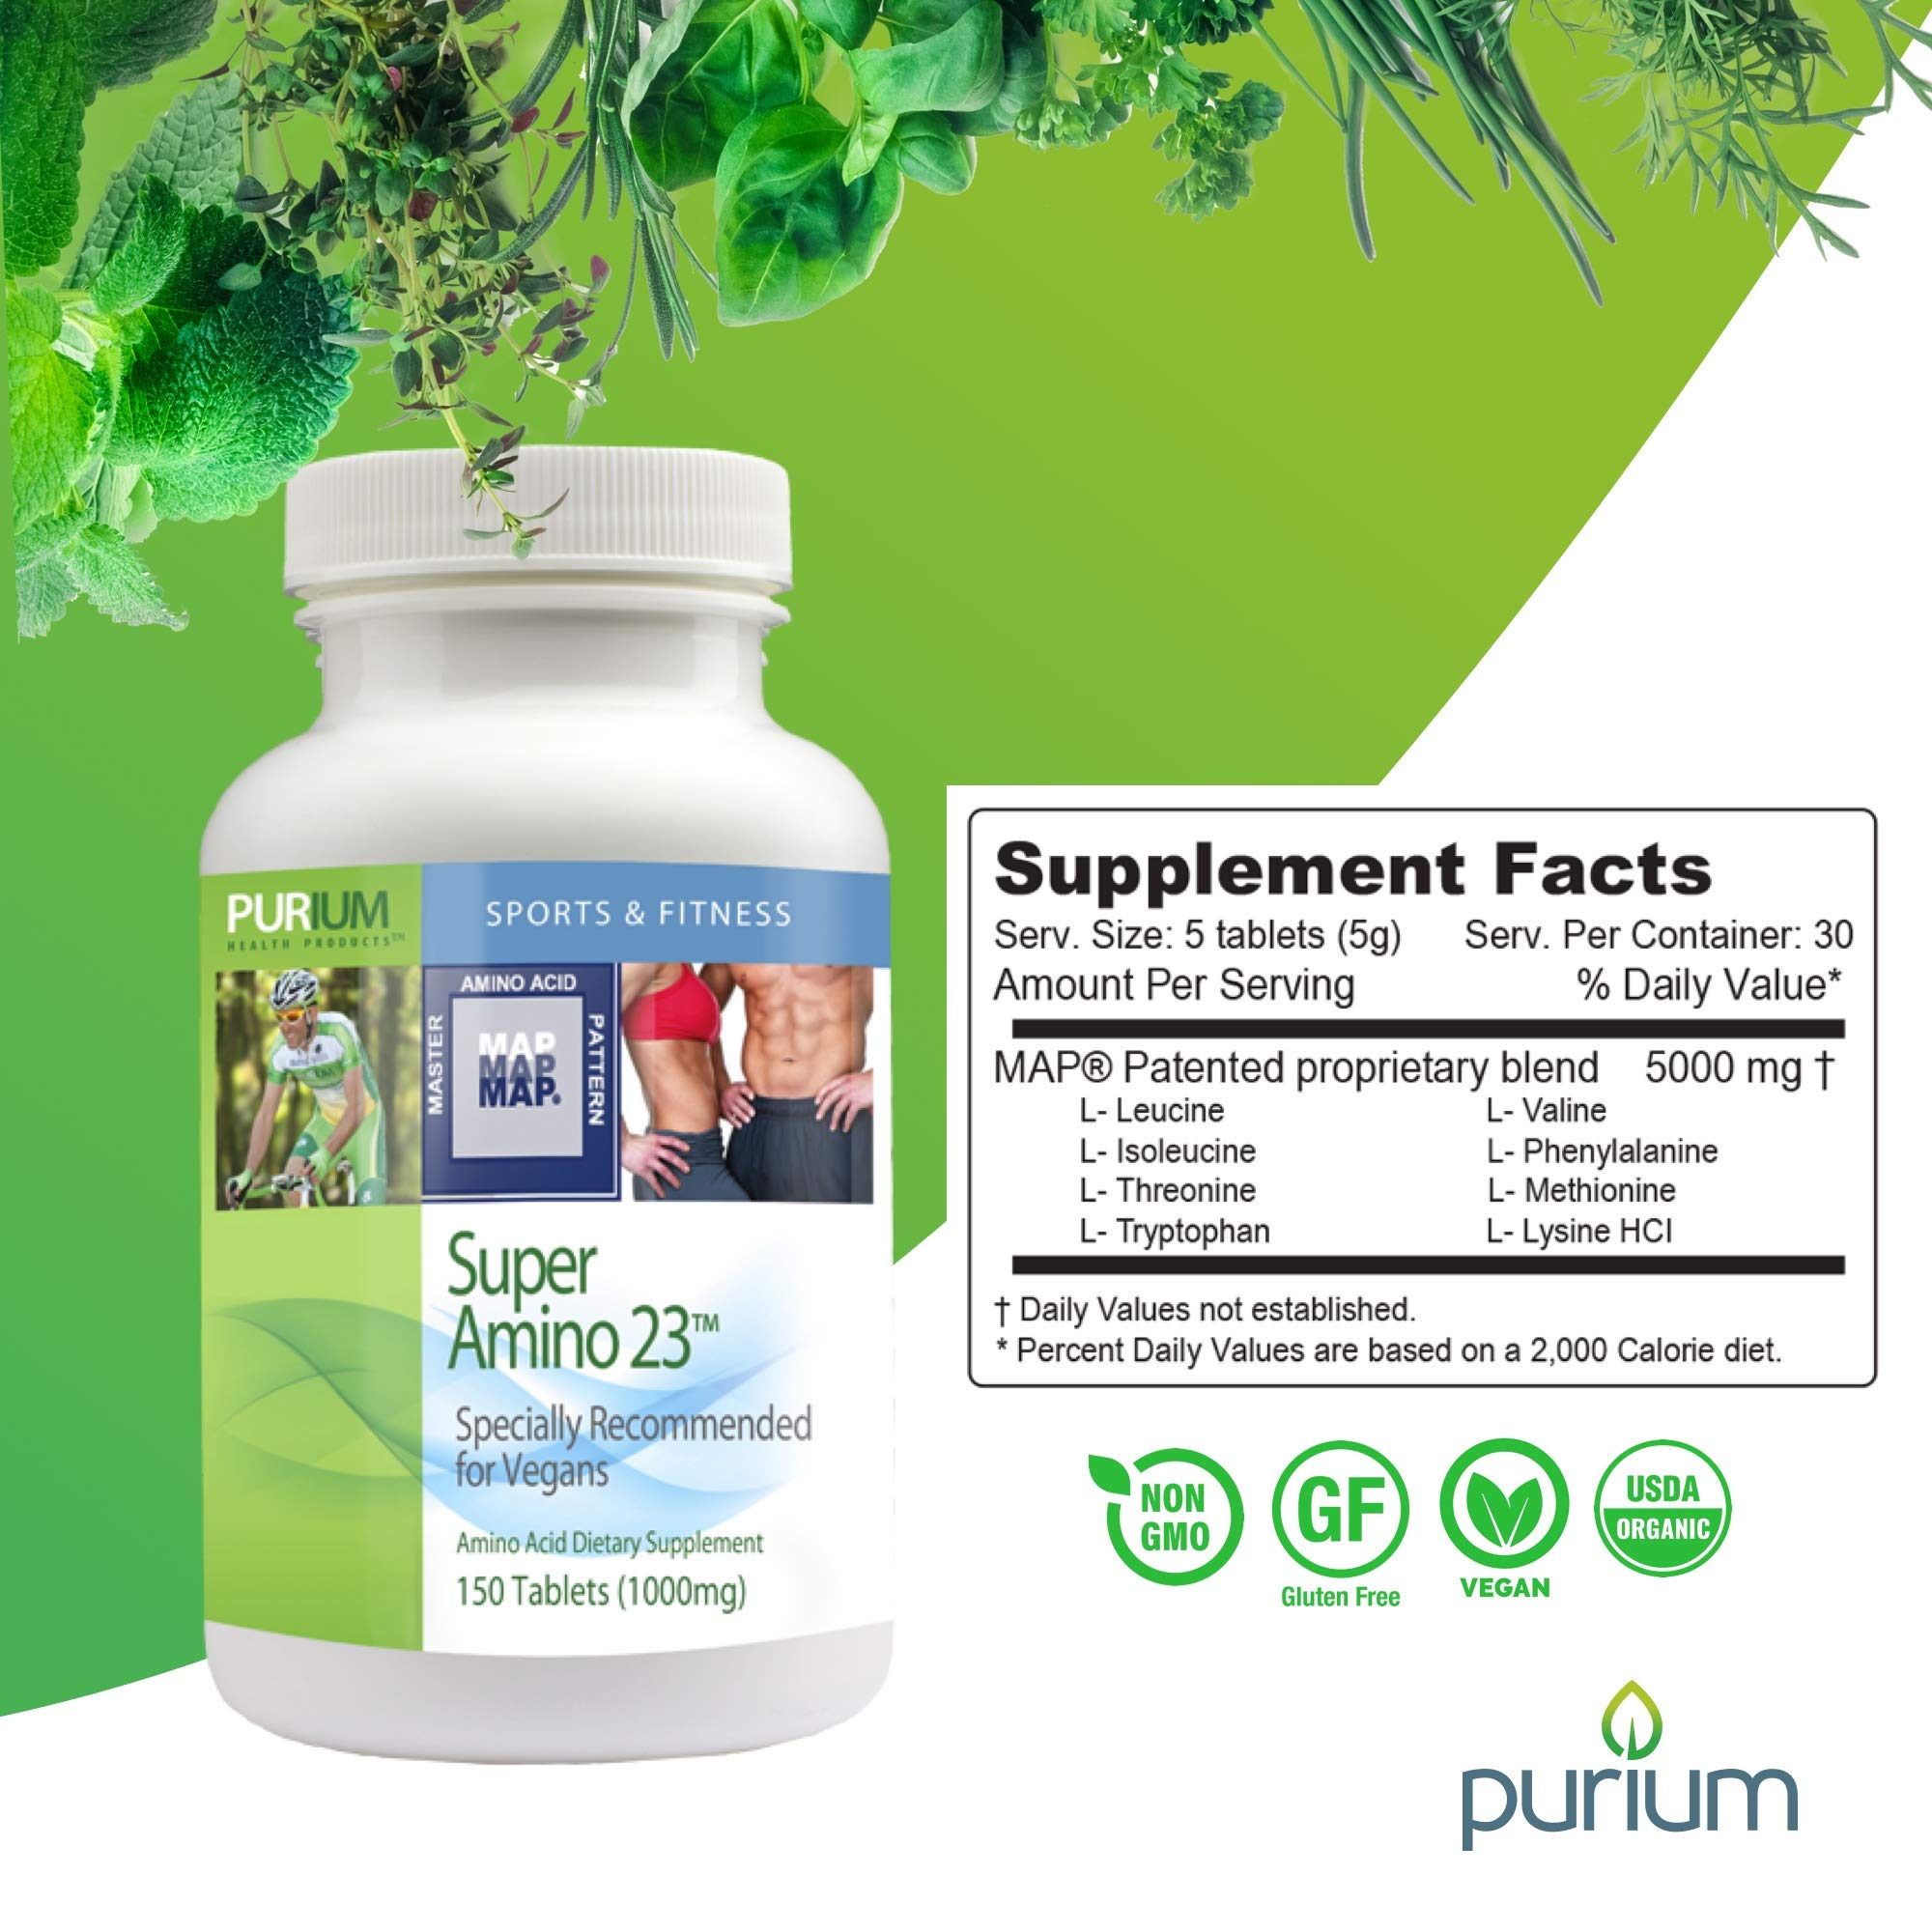 Purium Super Amino 23-150 Vegan Tablets - BCAA & Essential Amino Acid Dietary Supplement, Pre Workout, Recovery Aid, May Help Build Muscle - Gluten Free - 30 Servings by Purium (Image #5)